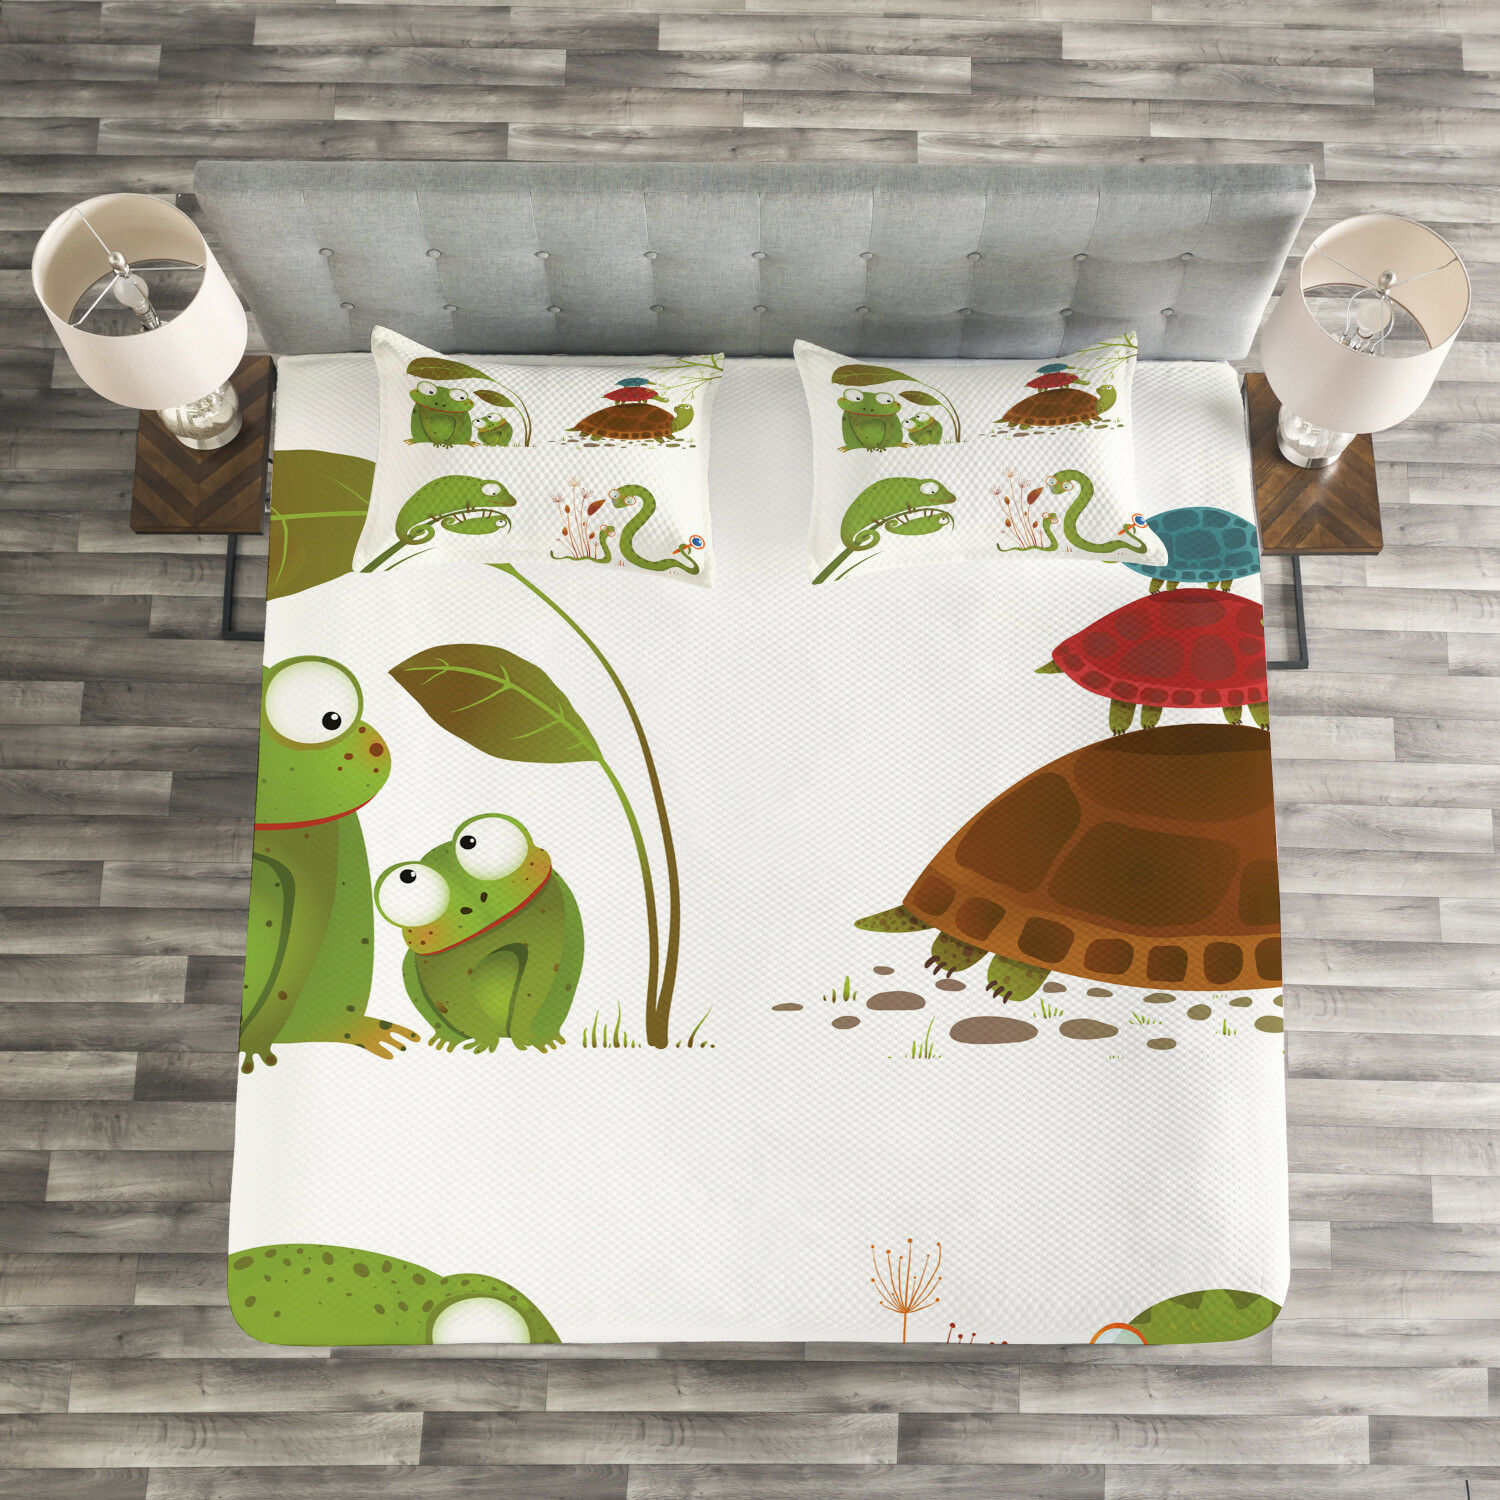 Animal Quilted Bedspread & Pillow Shams Set, Snake Frog Ninja Reptile Print